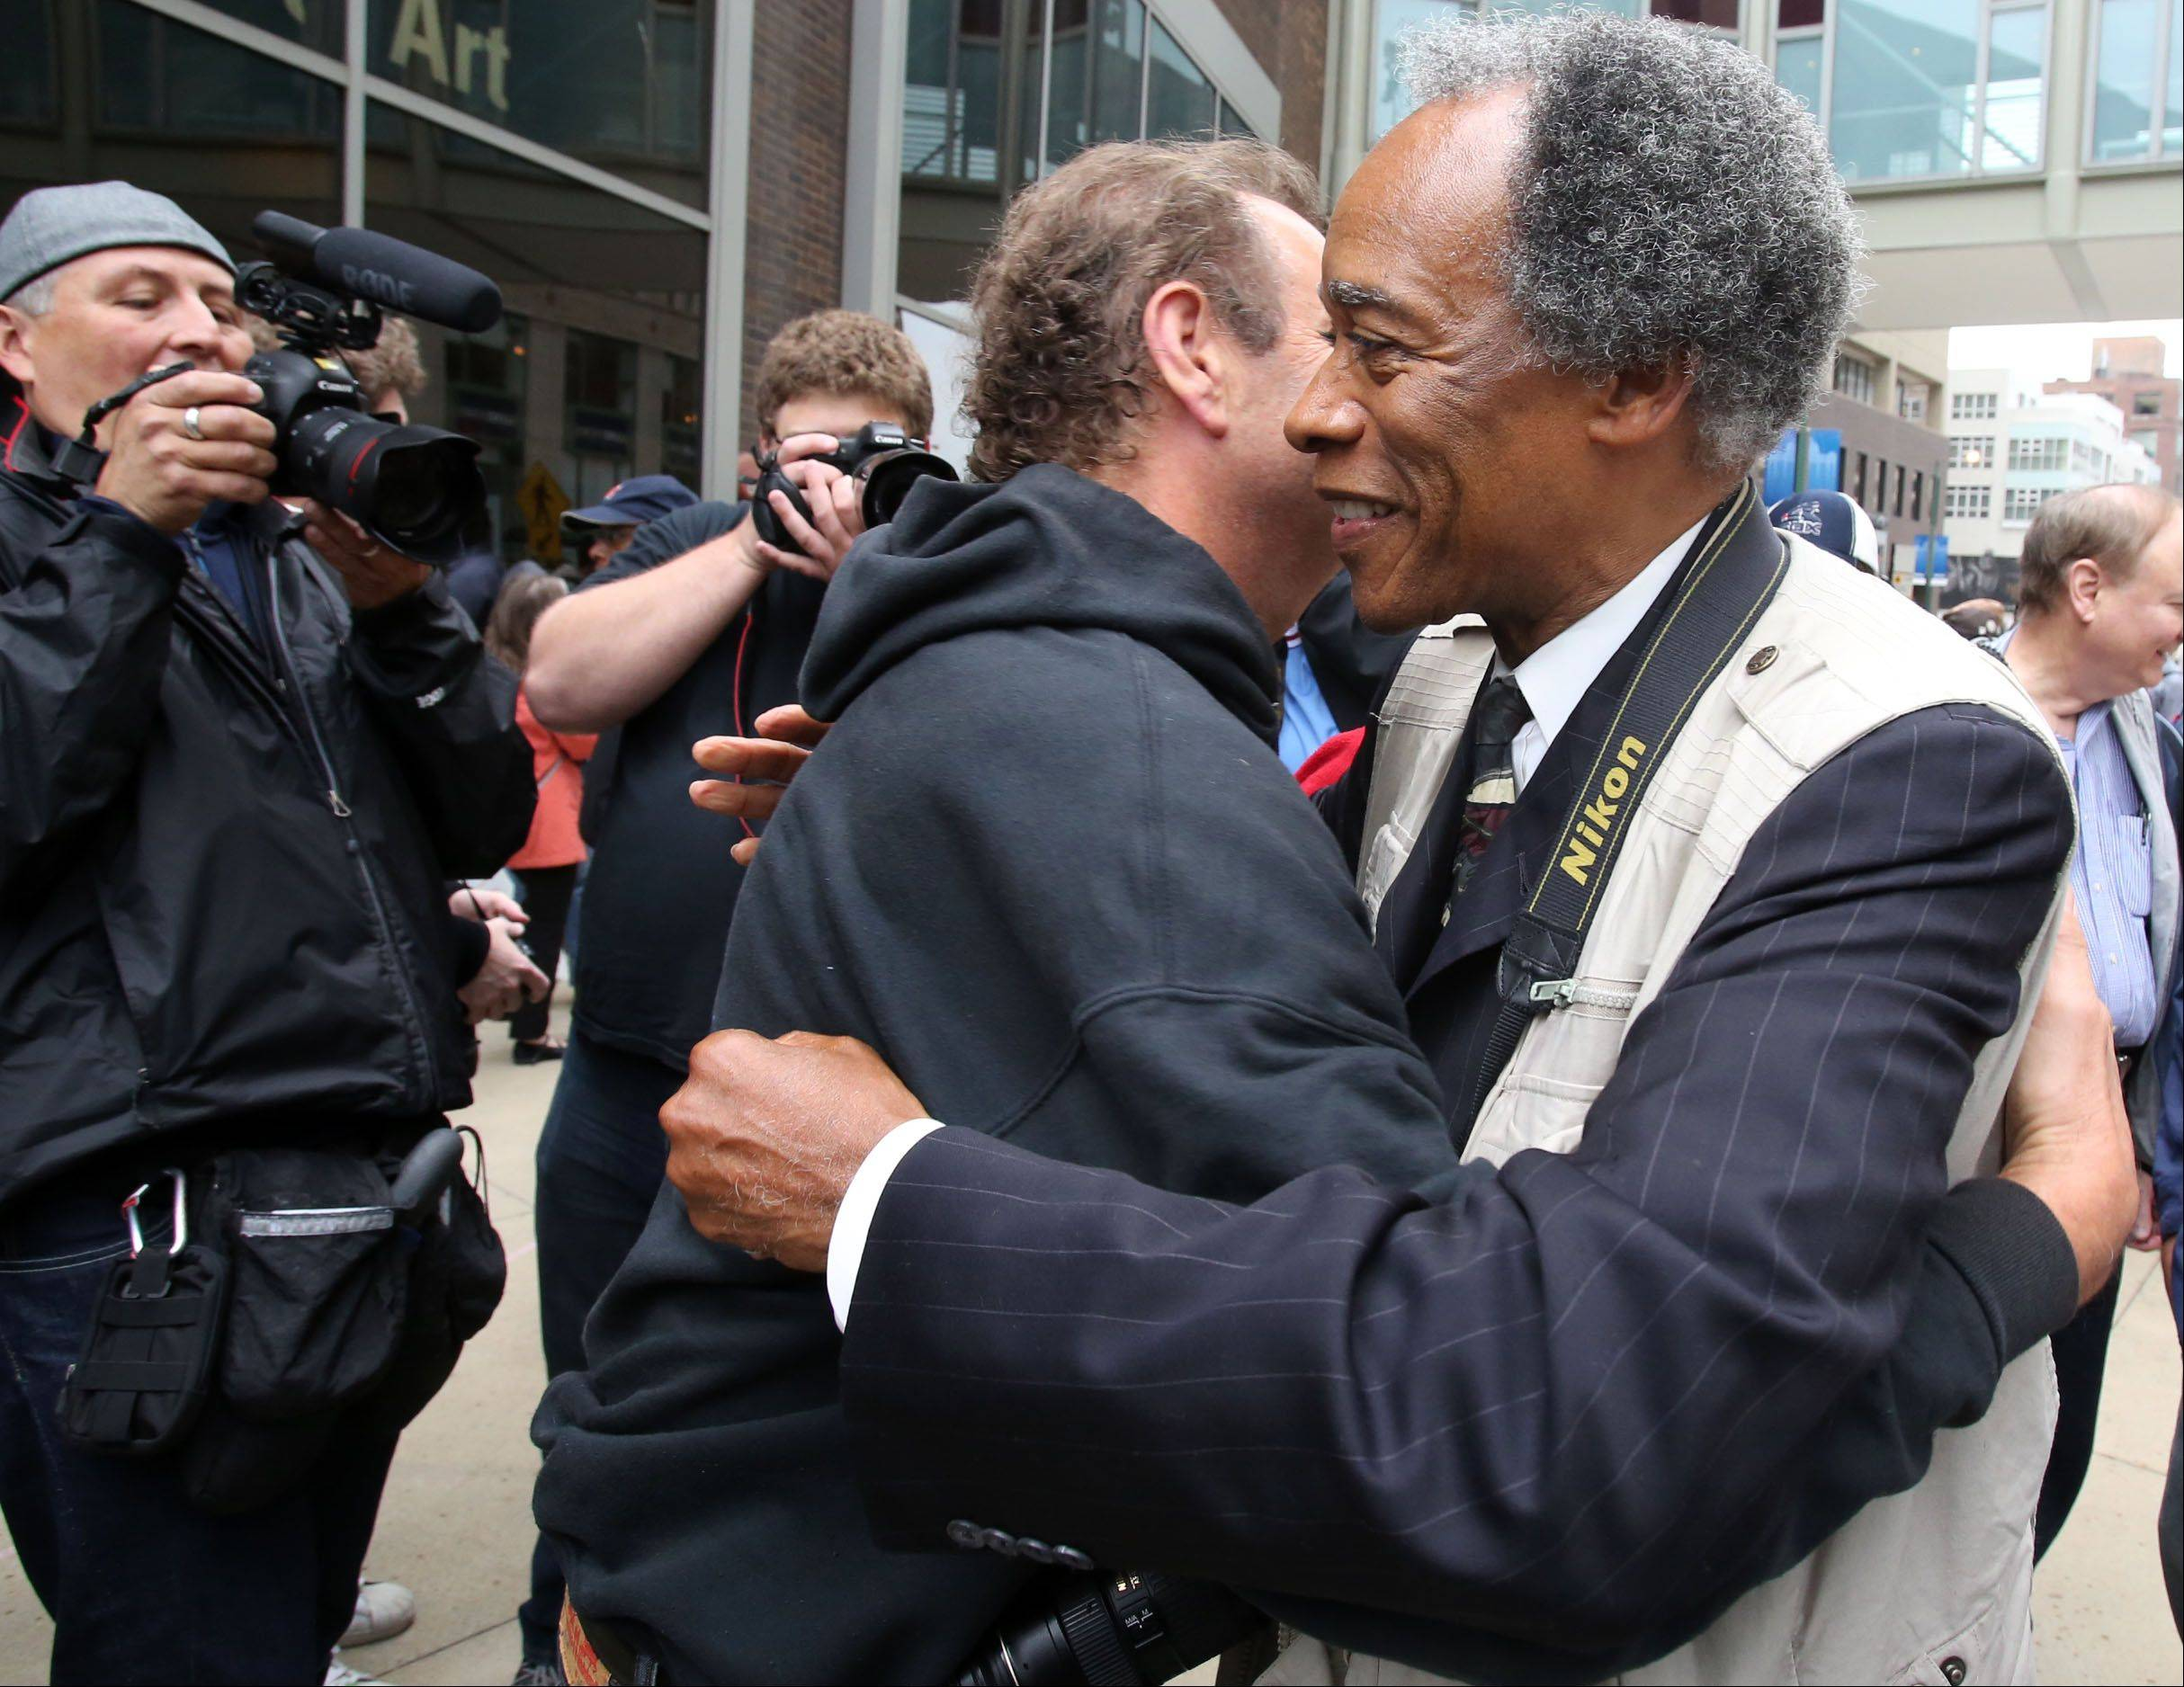 Former Sun-Times photographer John H. White, right, gets a hug from photographer Rich Chapman as about 150 rally in front of the Chicago Sun-Times building in support of the 28 laid-off photographers from the Sun-Times and its suburban newspapers.